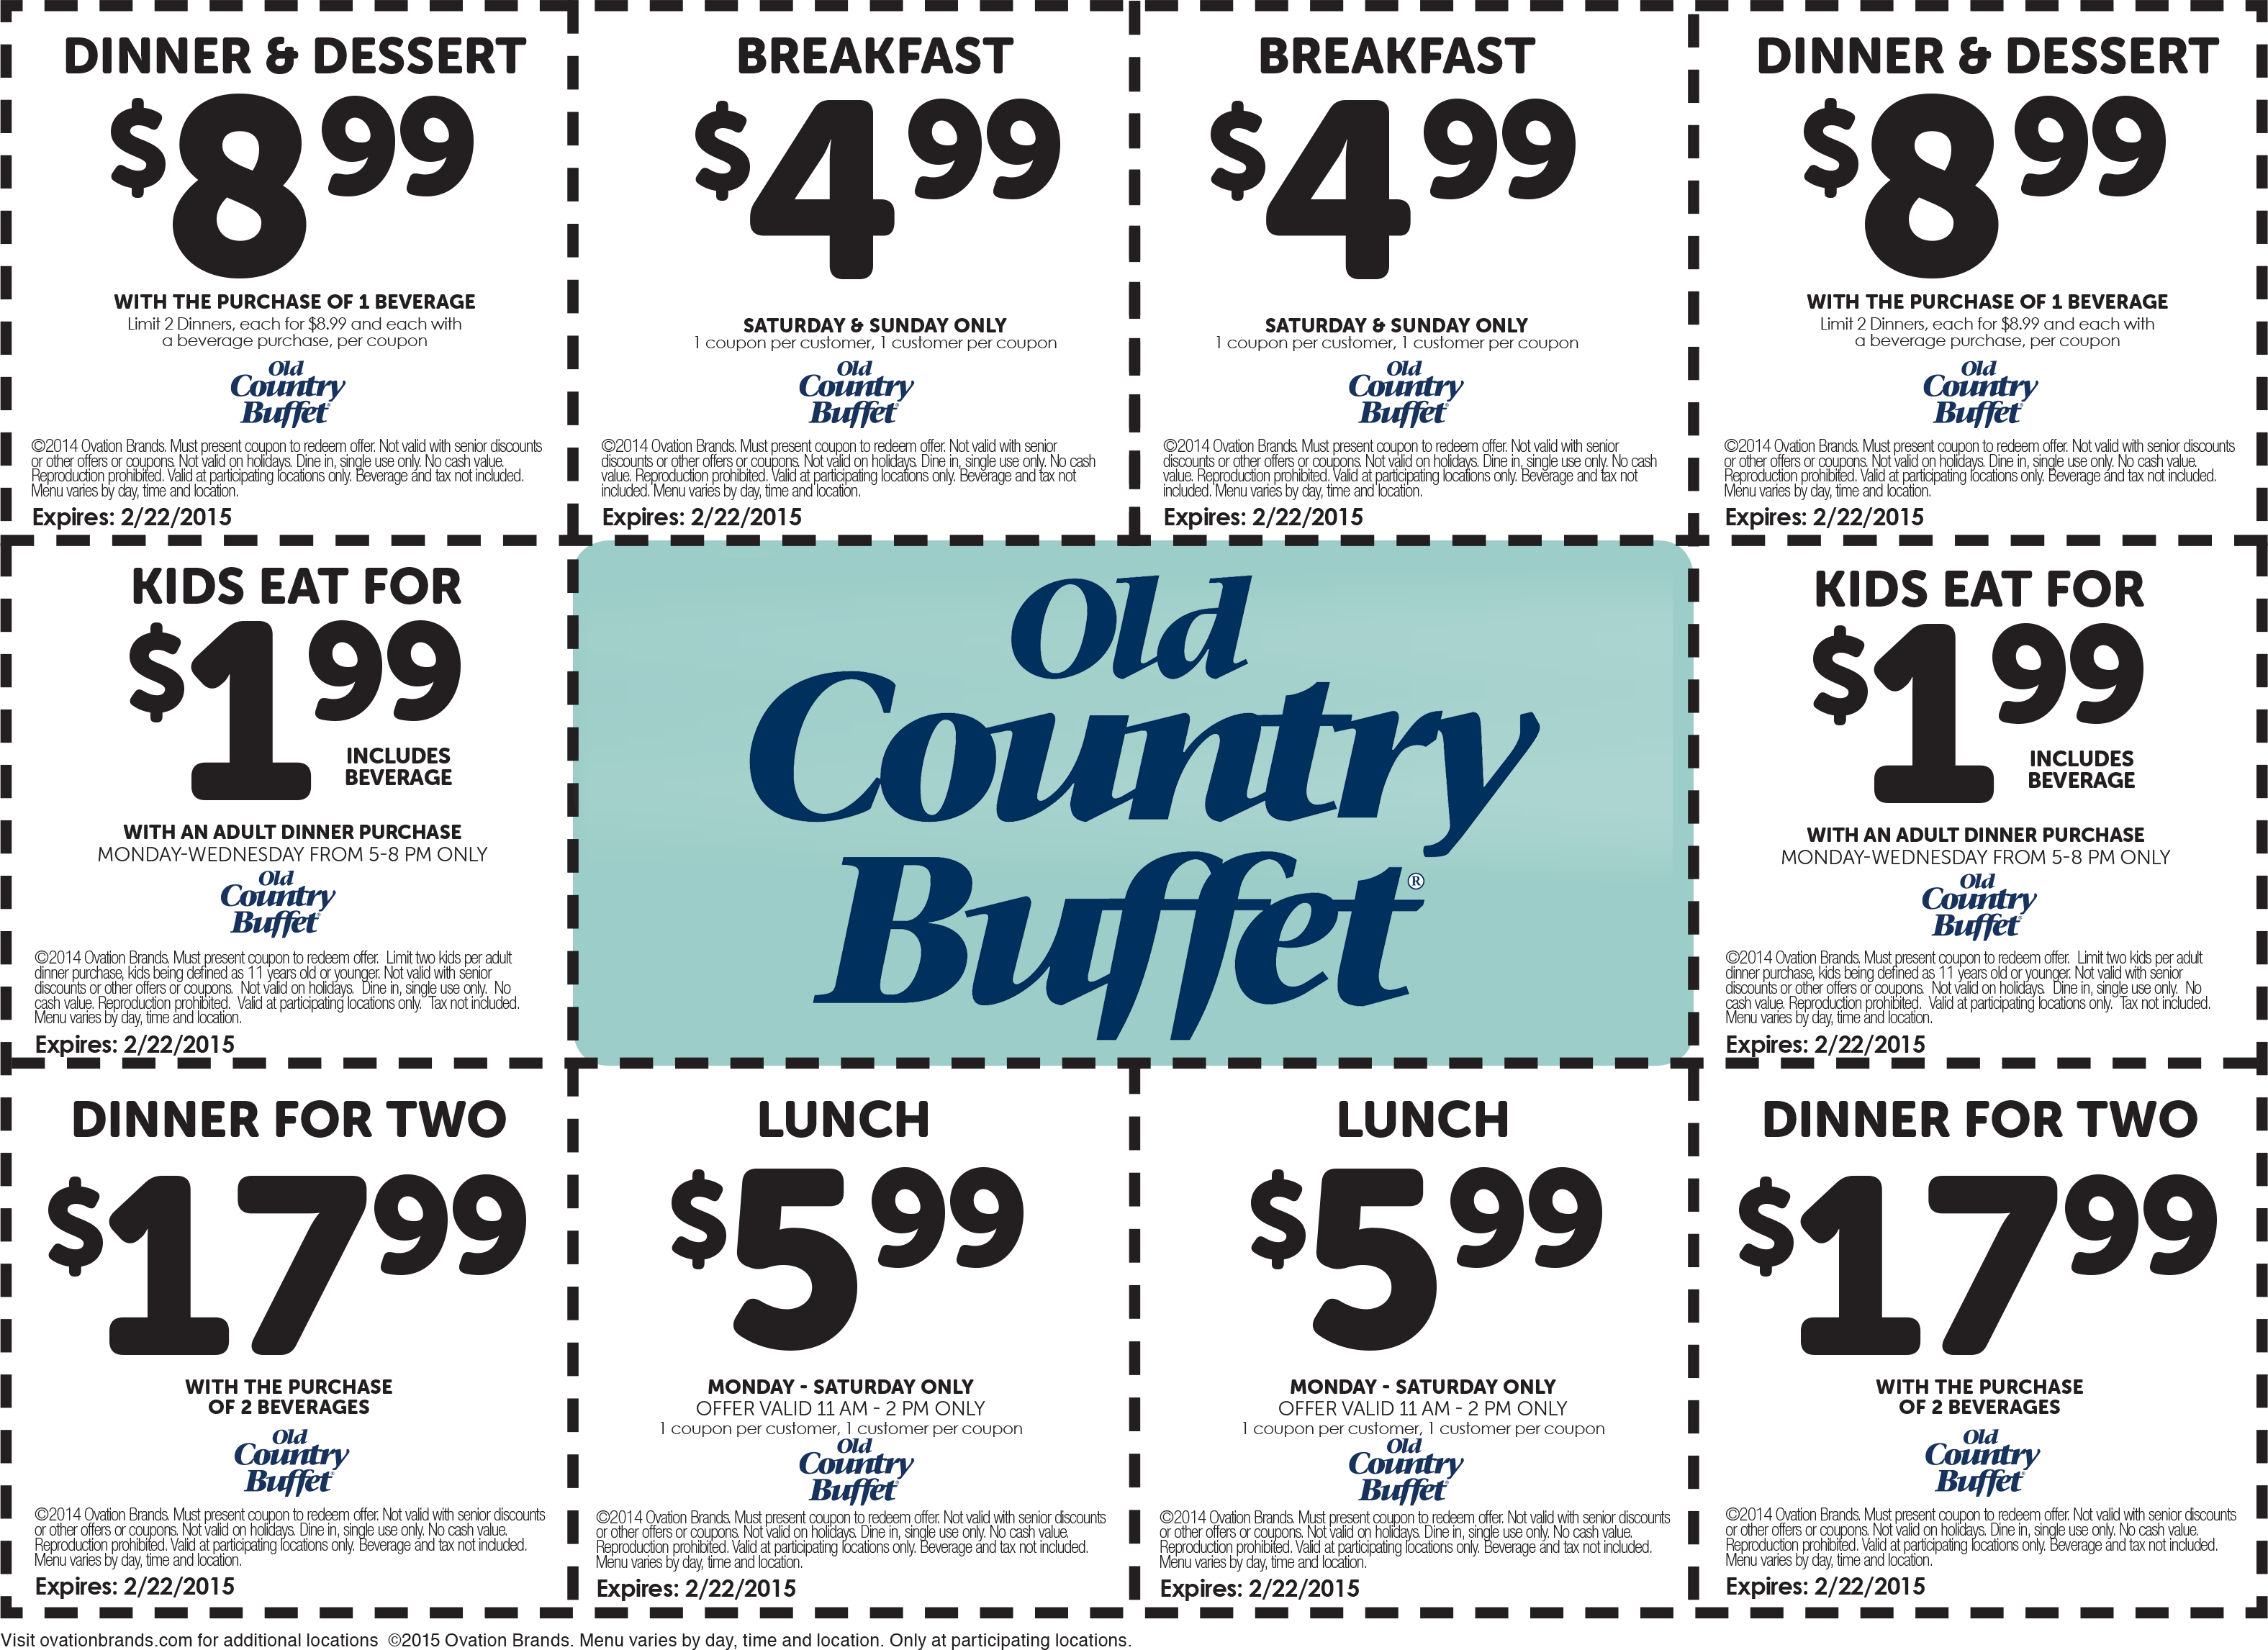 pinned december 31st 2 kids 5 breakfast 6 lunch more at old rh pinterest com old country buffet coupons old country buffet coupons burnsville mn